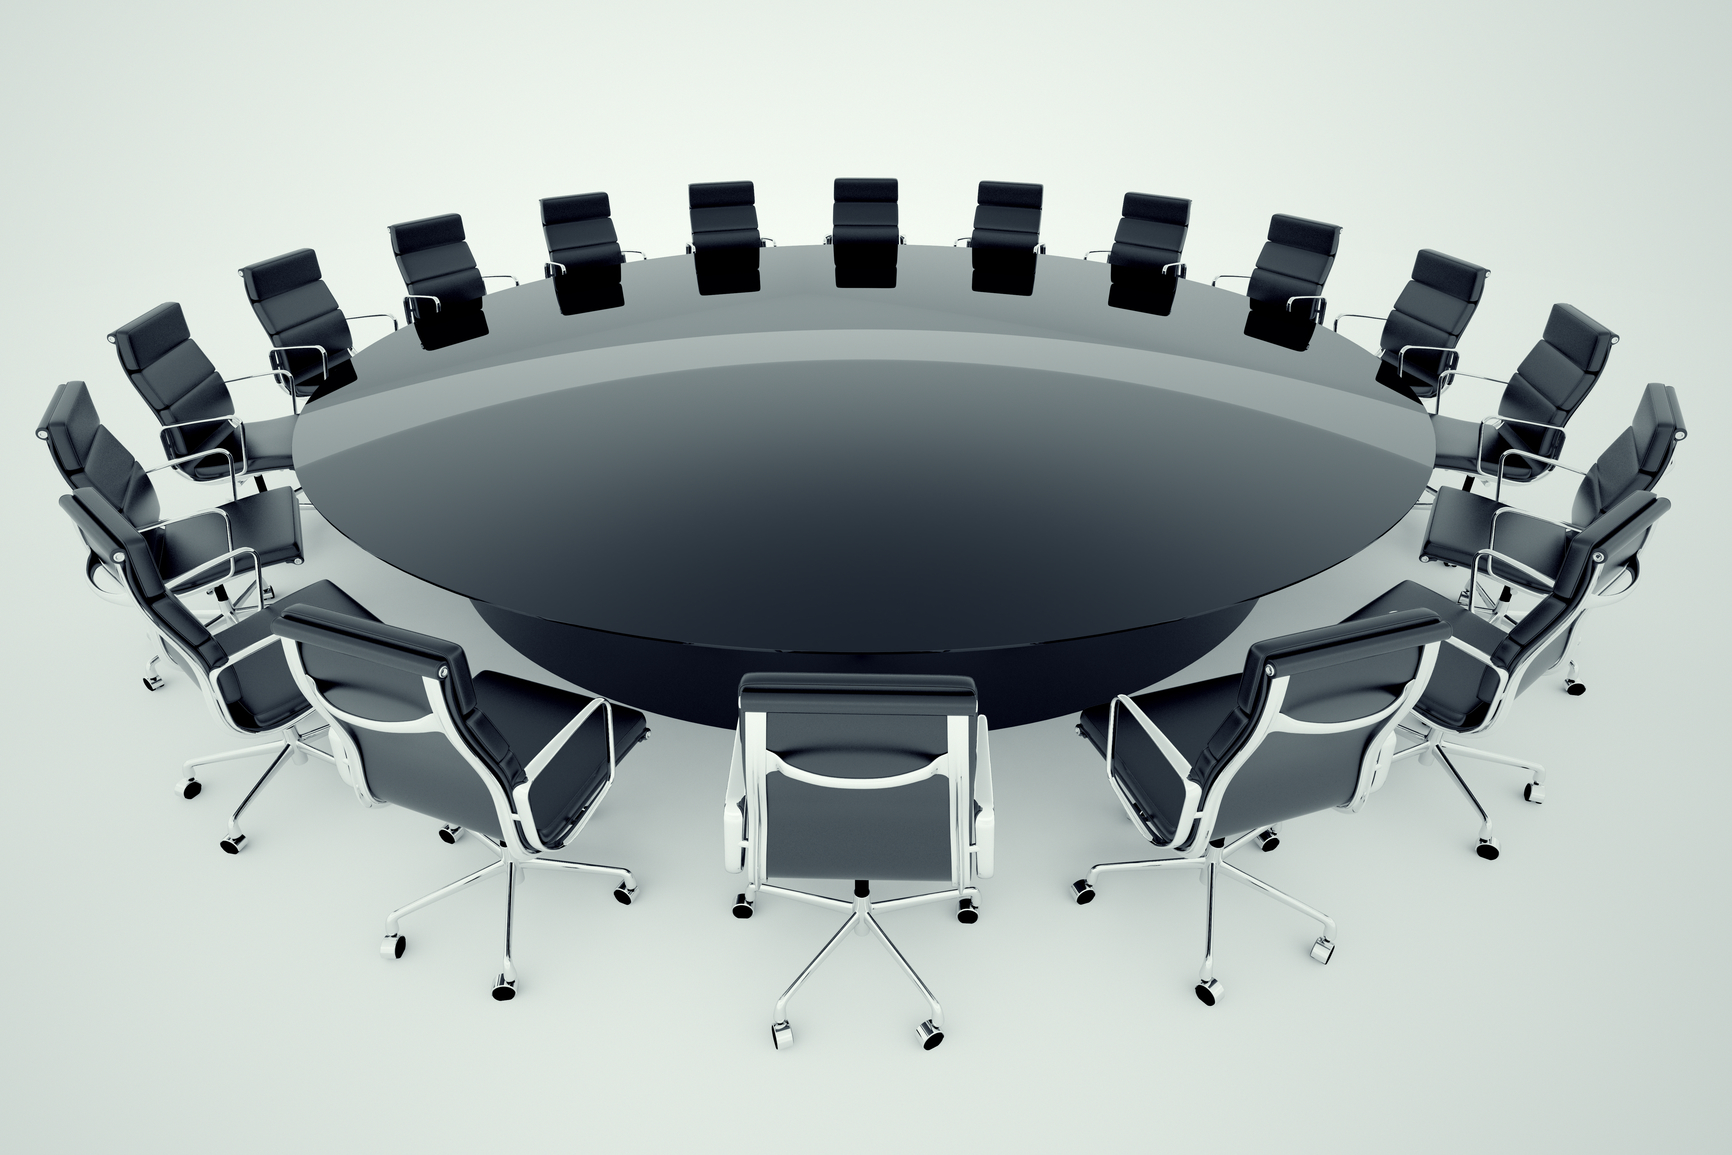 Cloud, nube